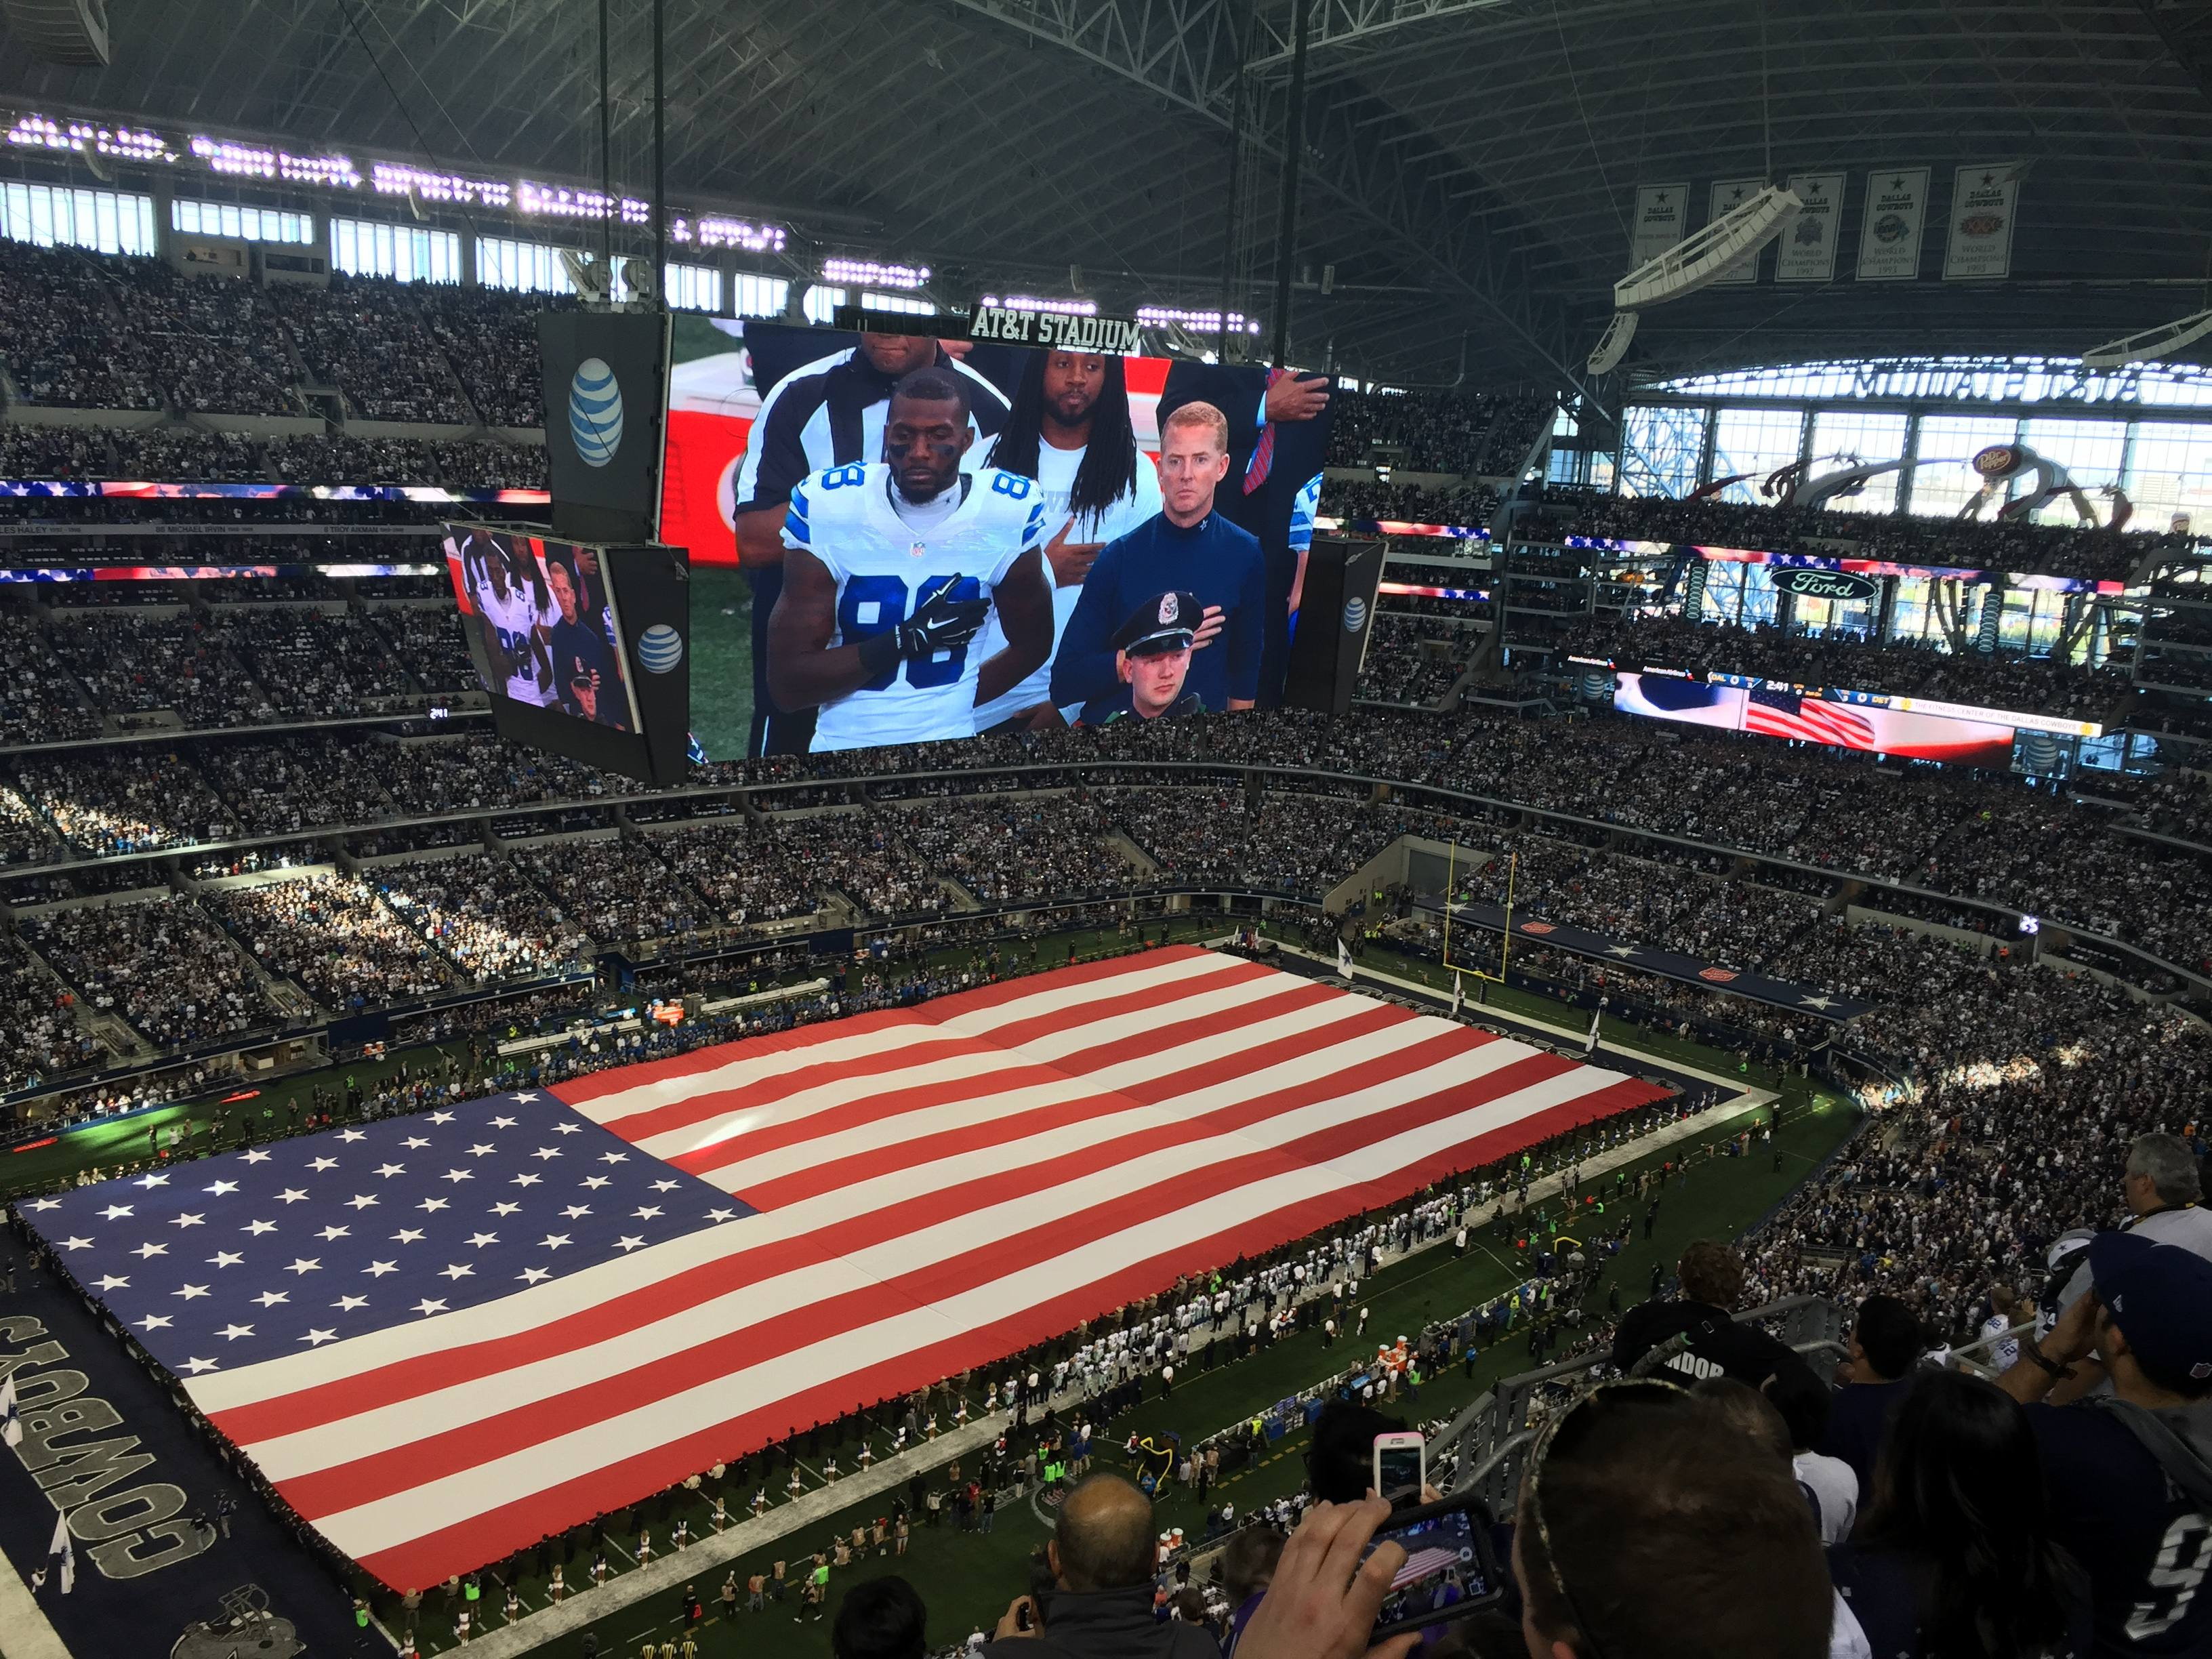 America's Team: Putting The Dallas Cowboys Brand In Perspective